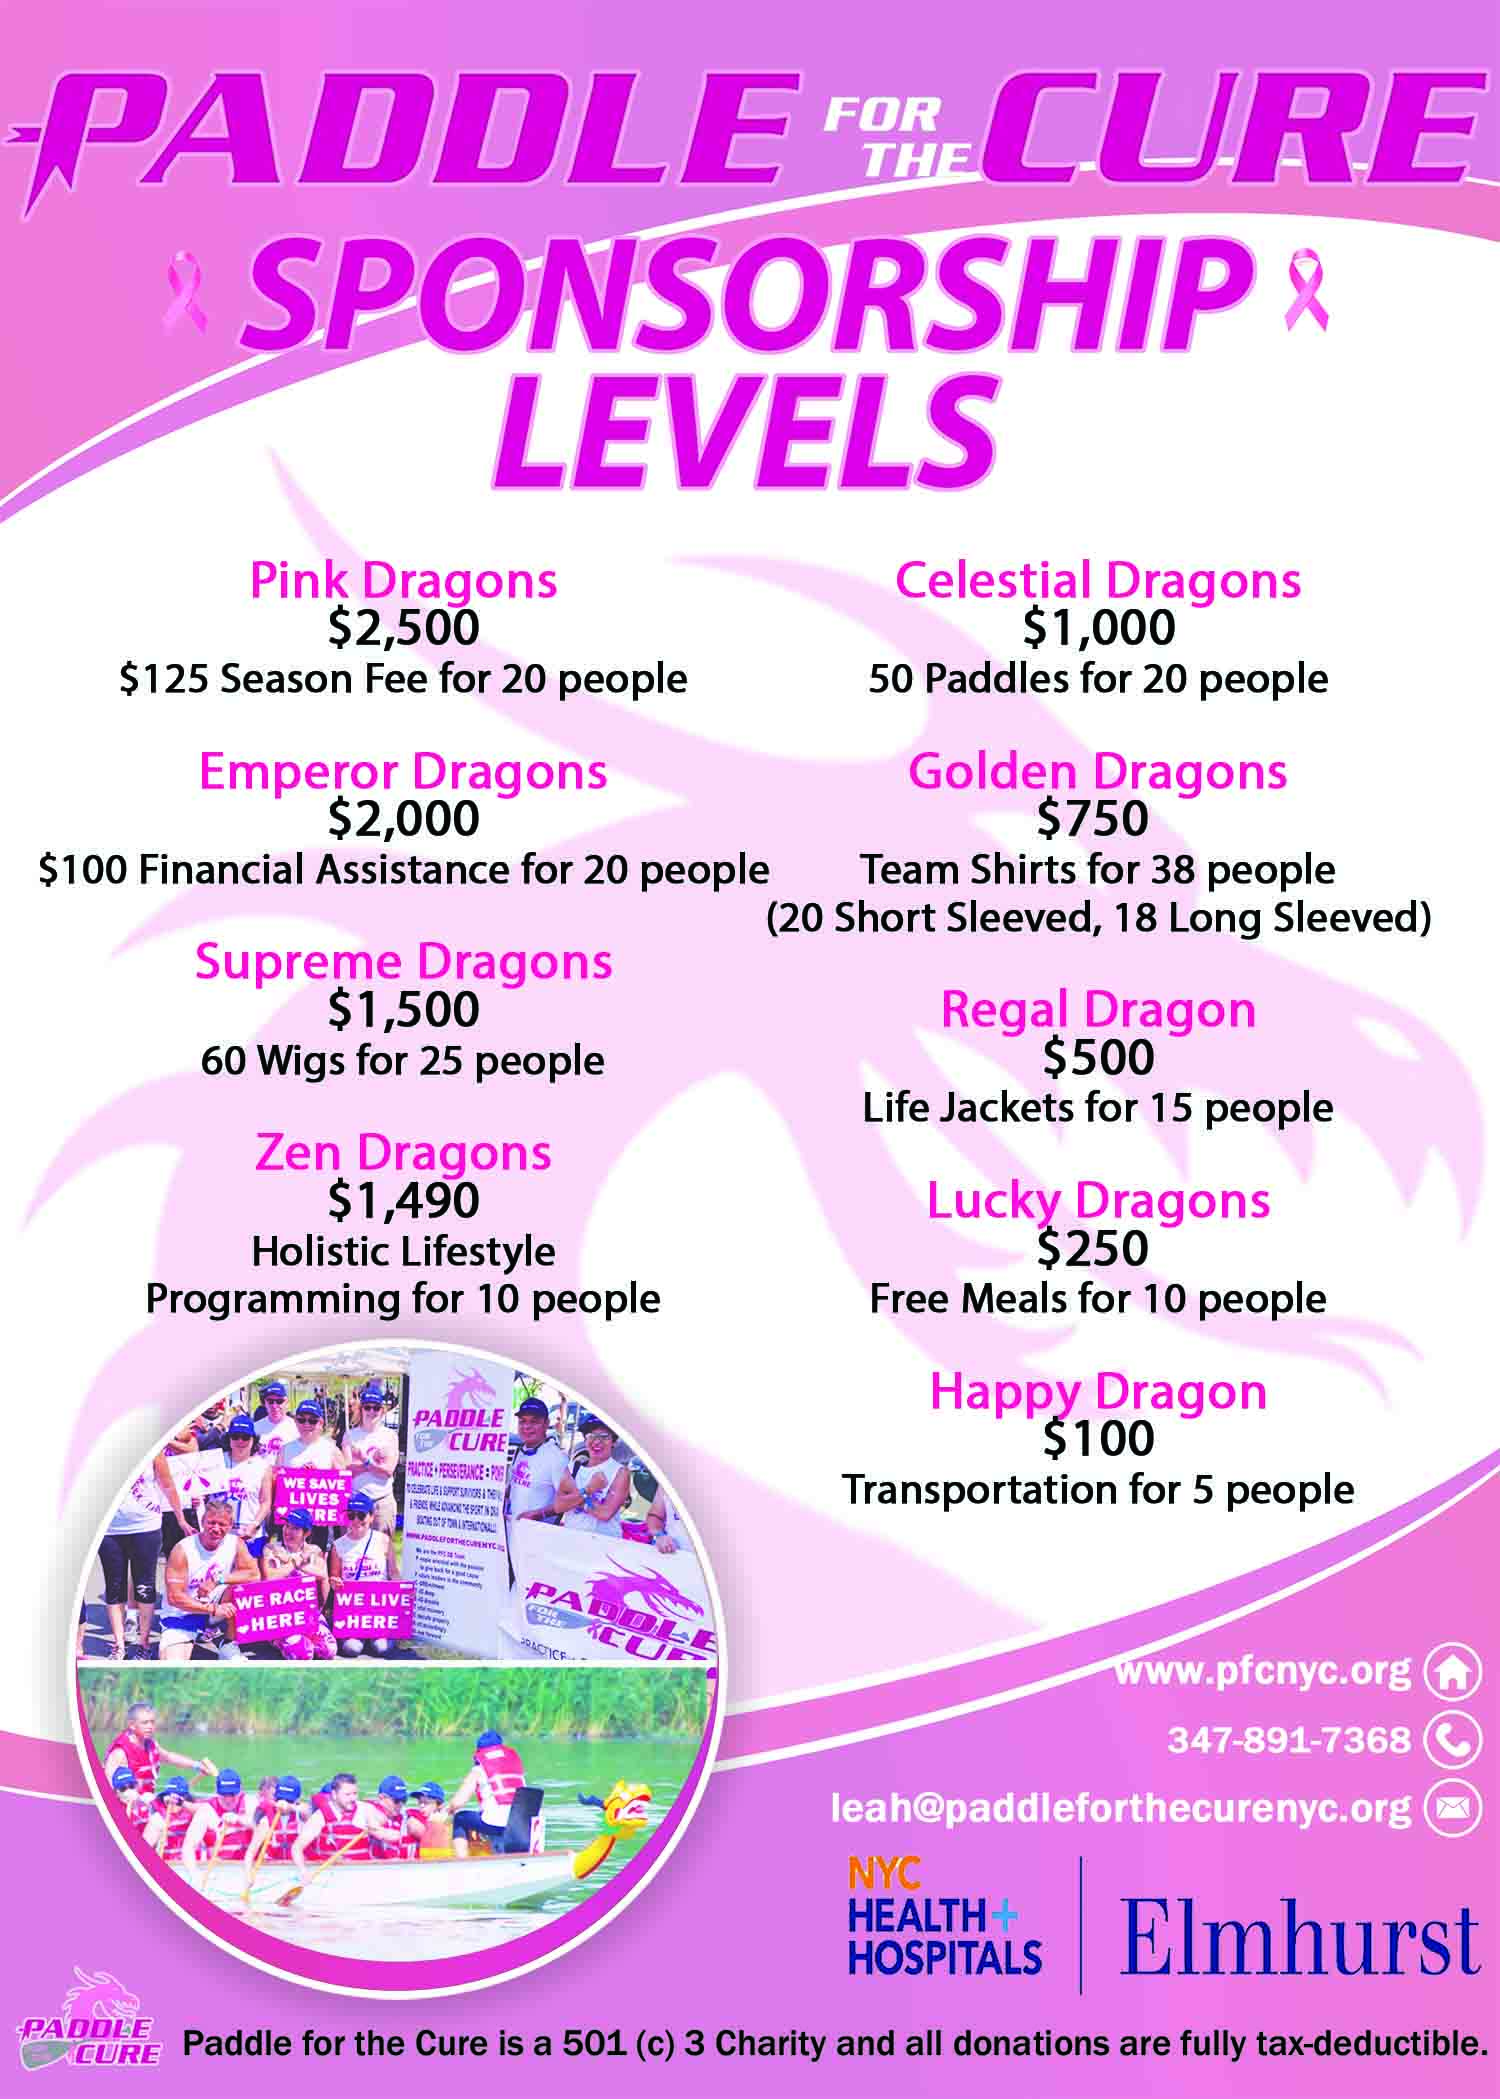 Paddle for the Cure Sponsorship Level